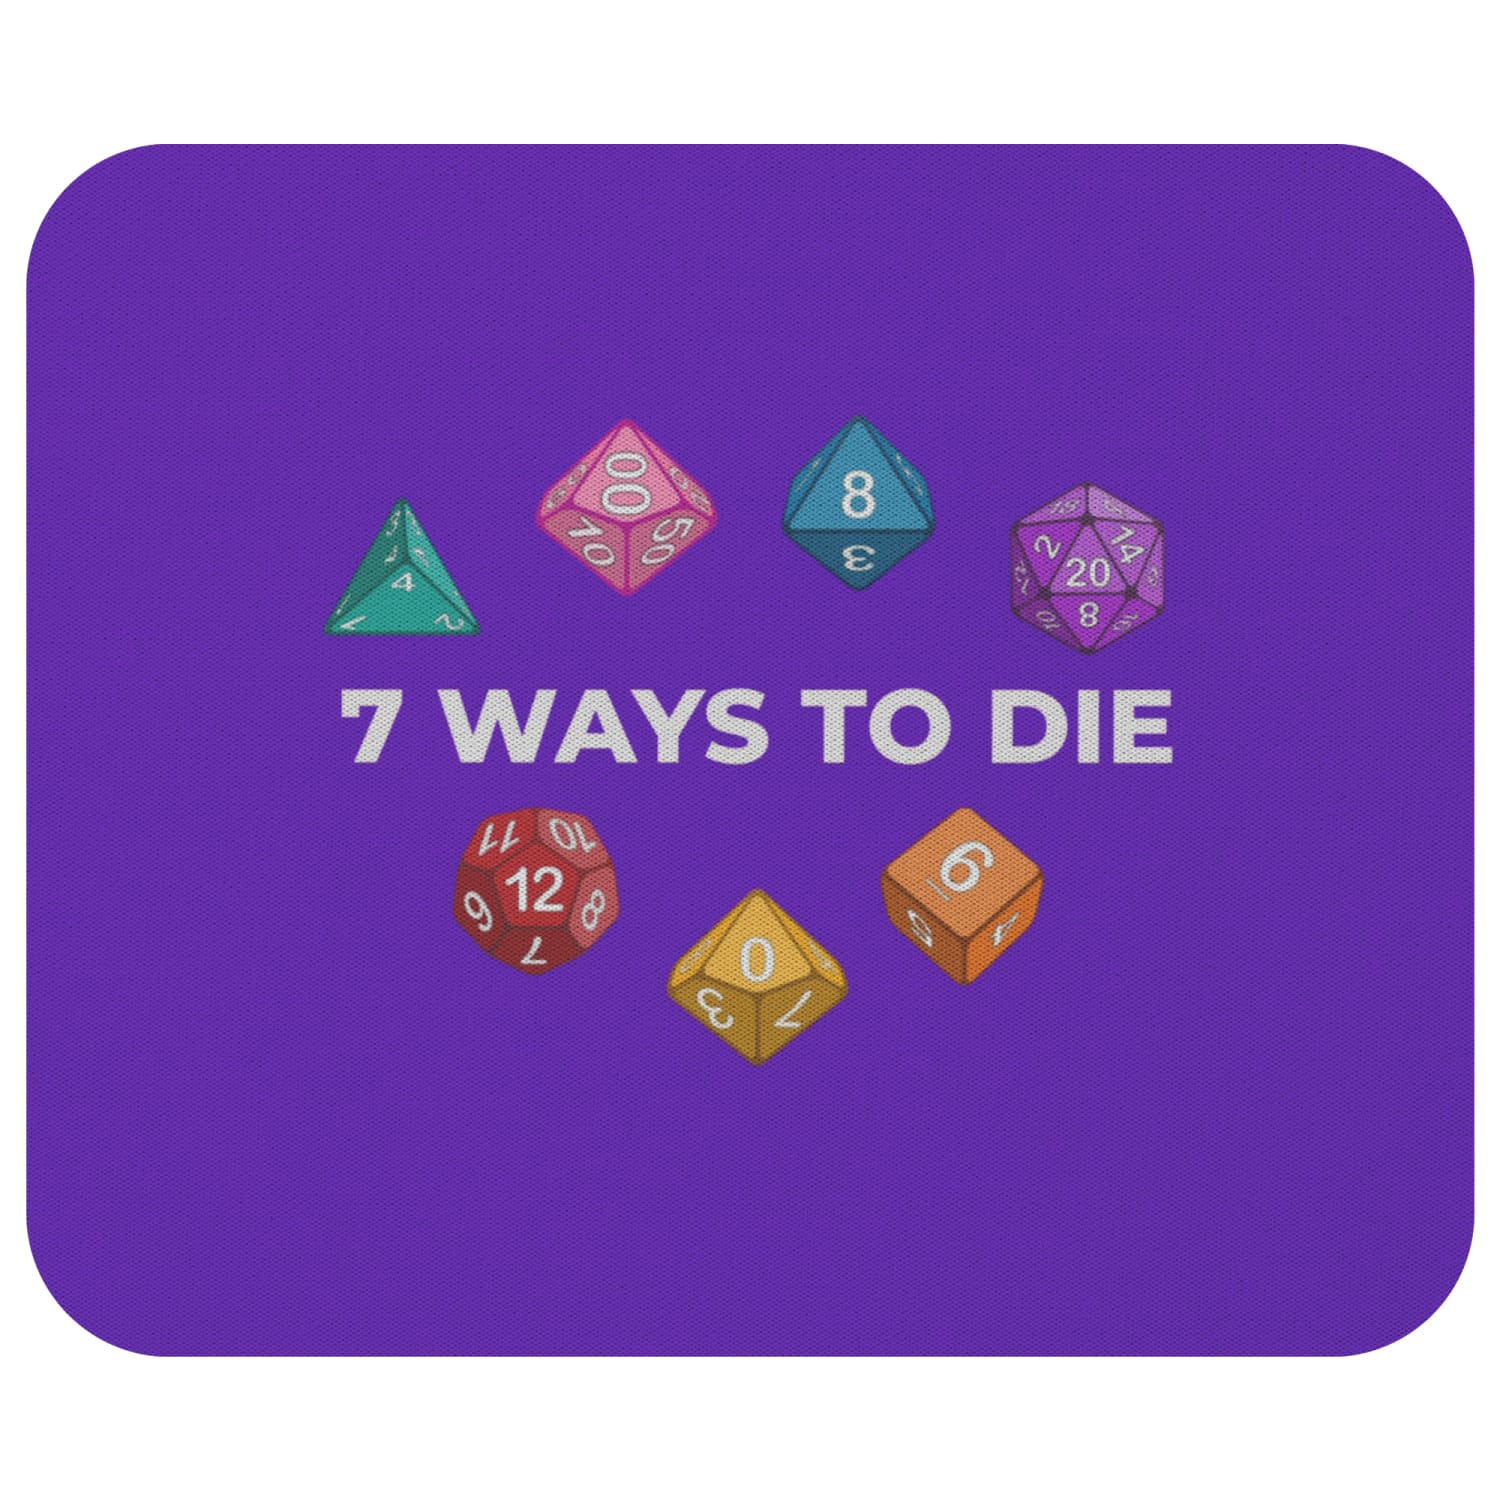 7 Ways To Die Mousepad - 7WPurple - Mousepads